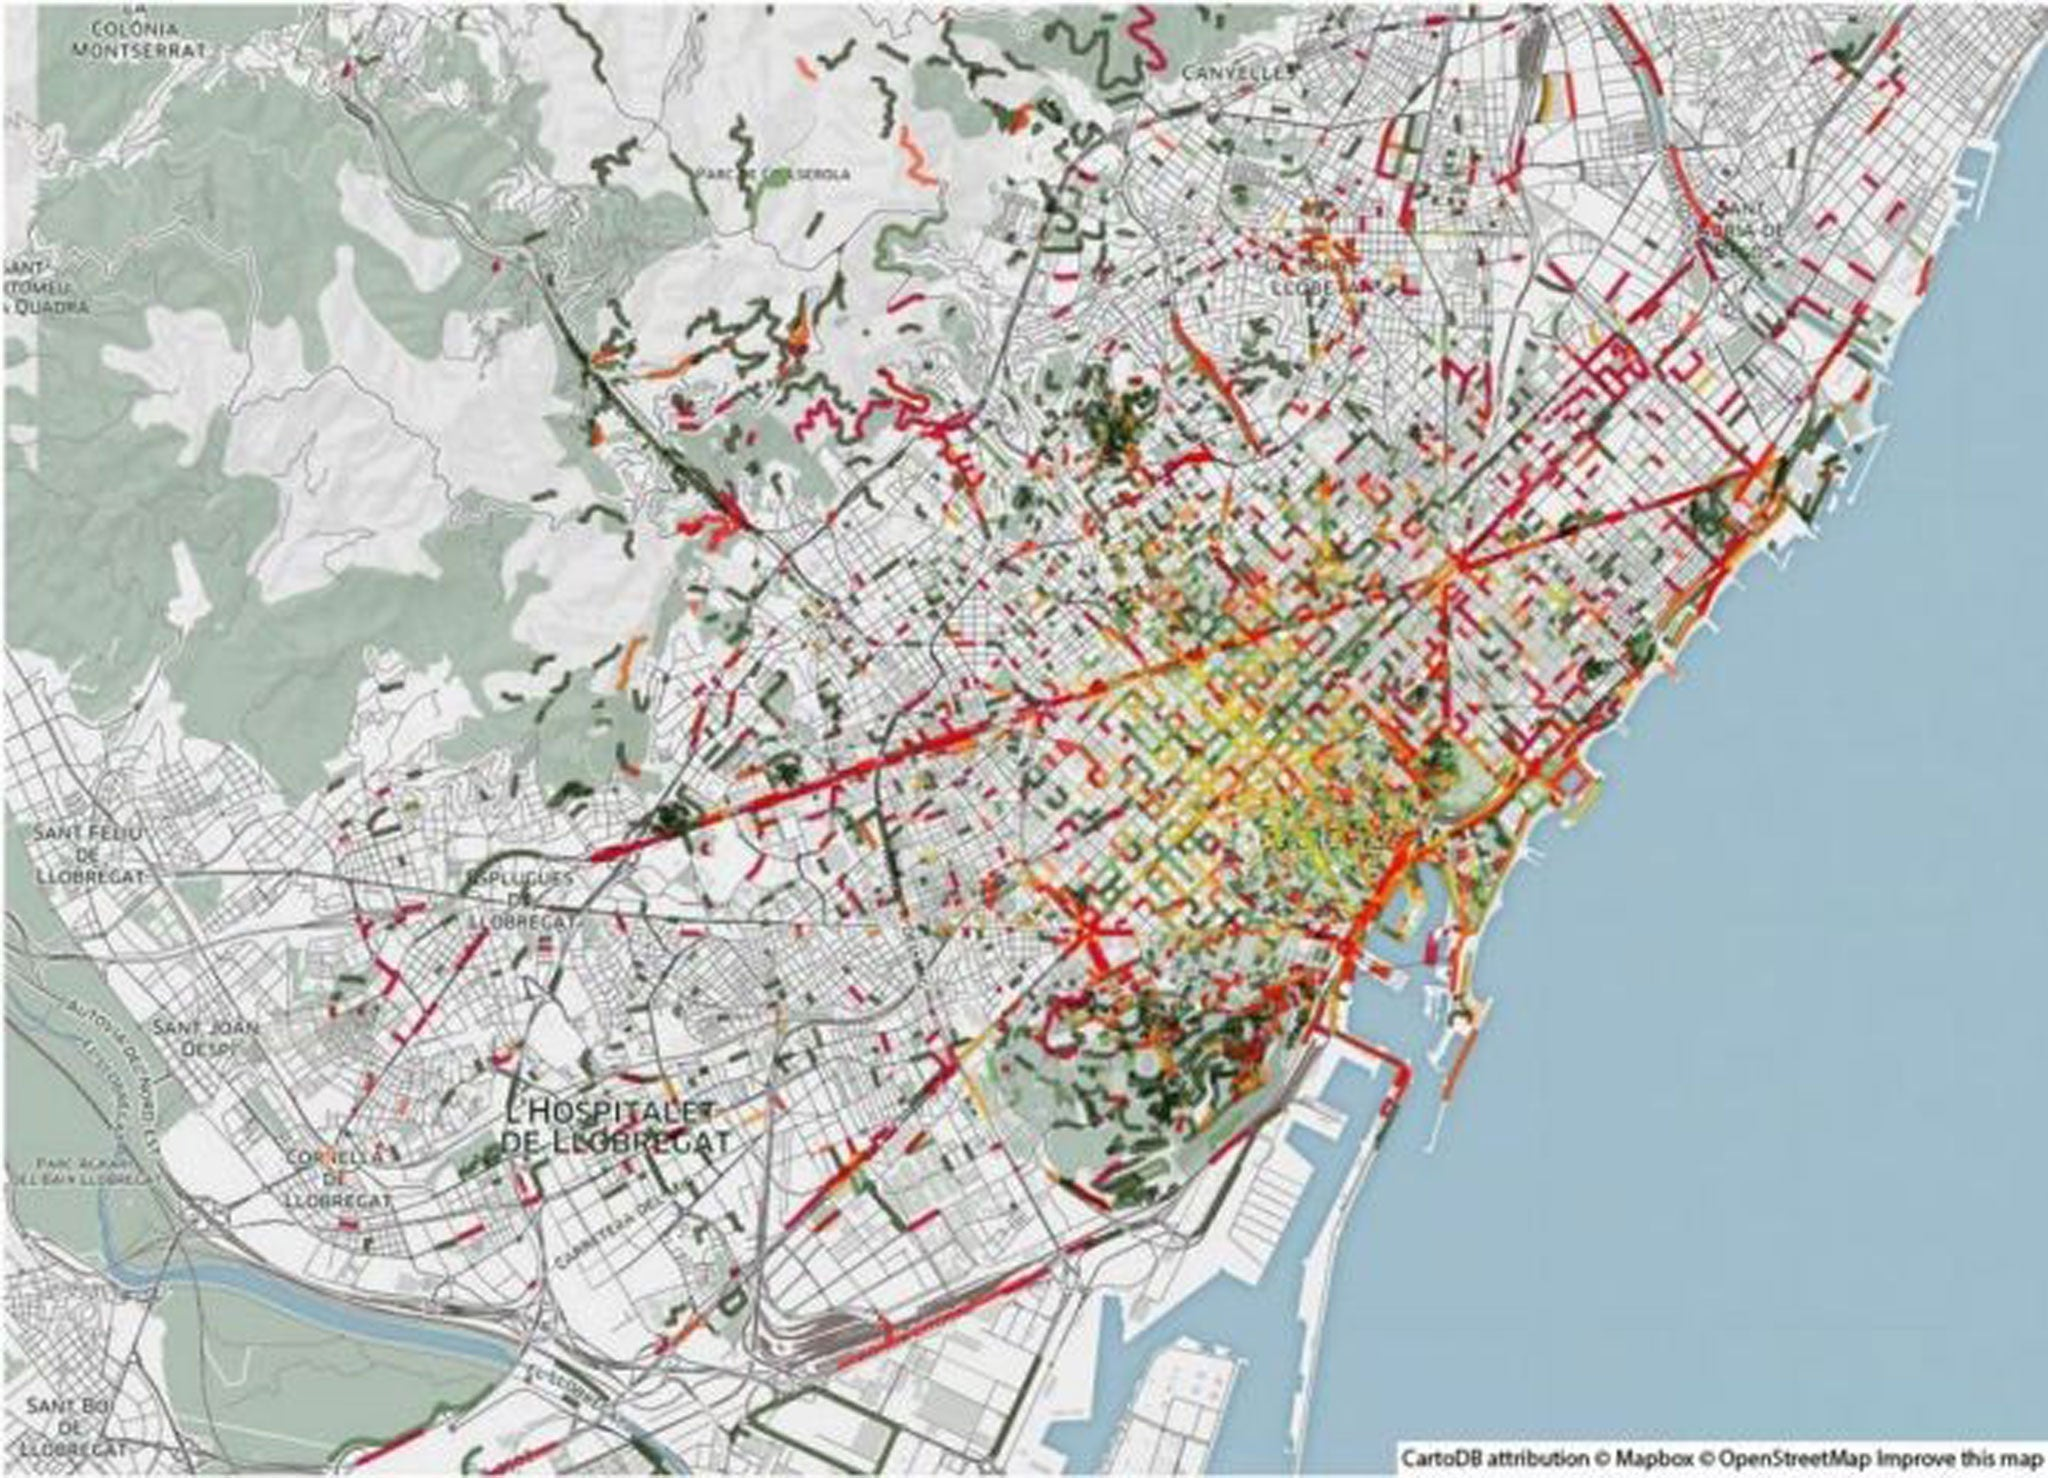 Researchers compile 'smell maps' of urban areas using the